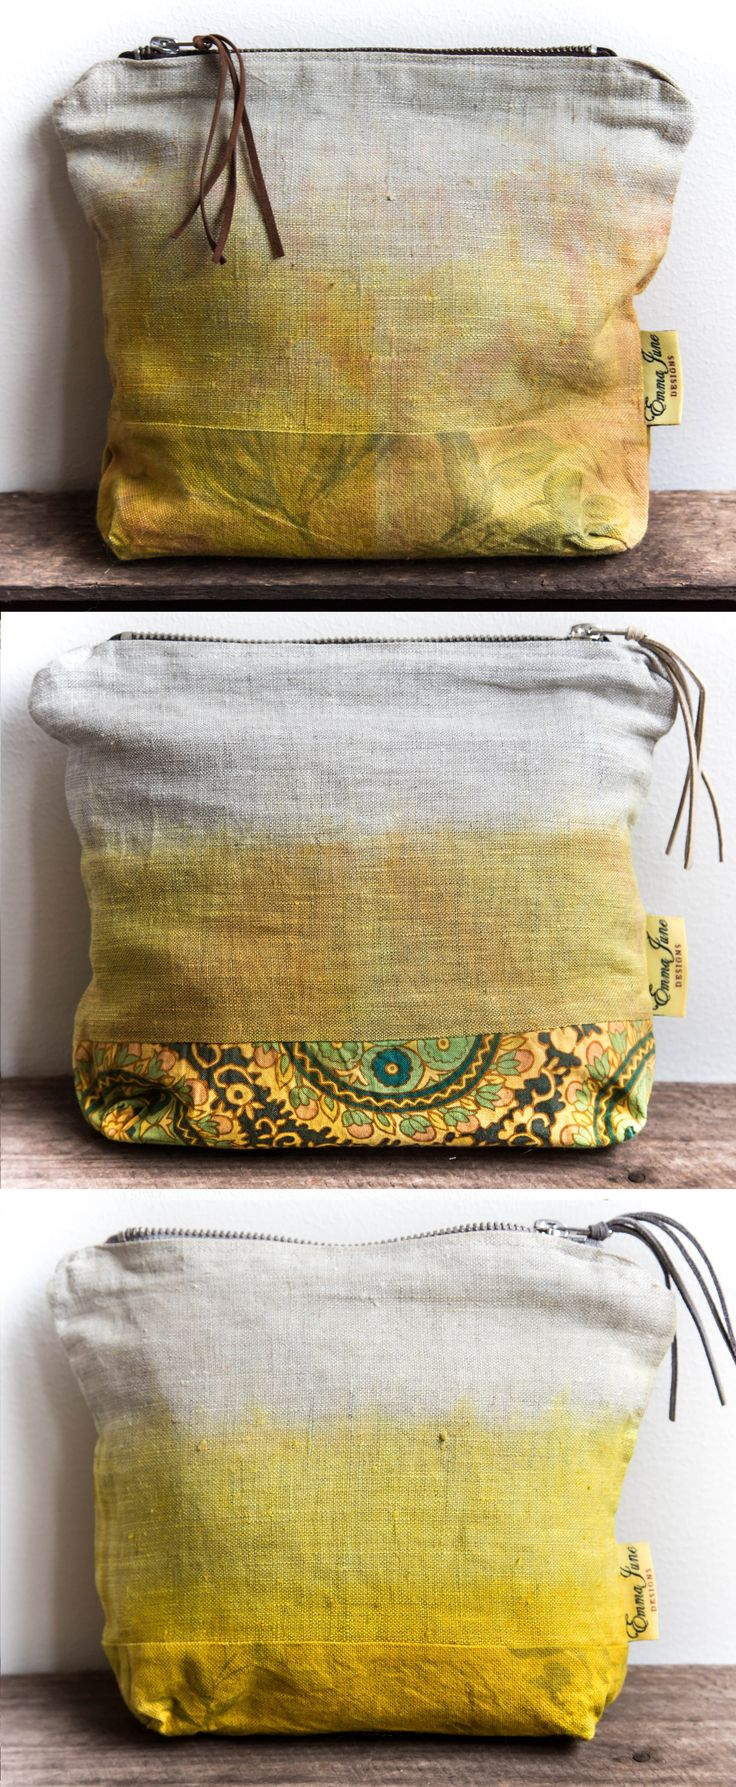 Naturally dyed with Turmeric- Emma June Designs make-up bag- www.emmajunedesigns.co.uk